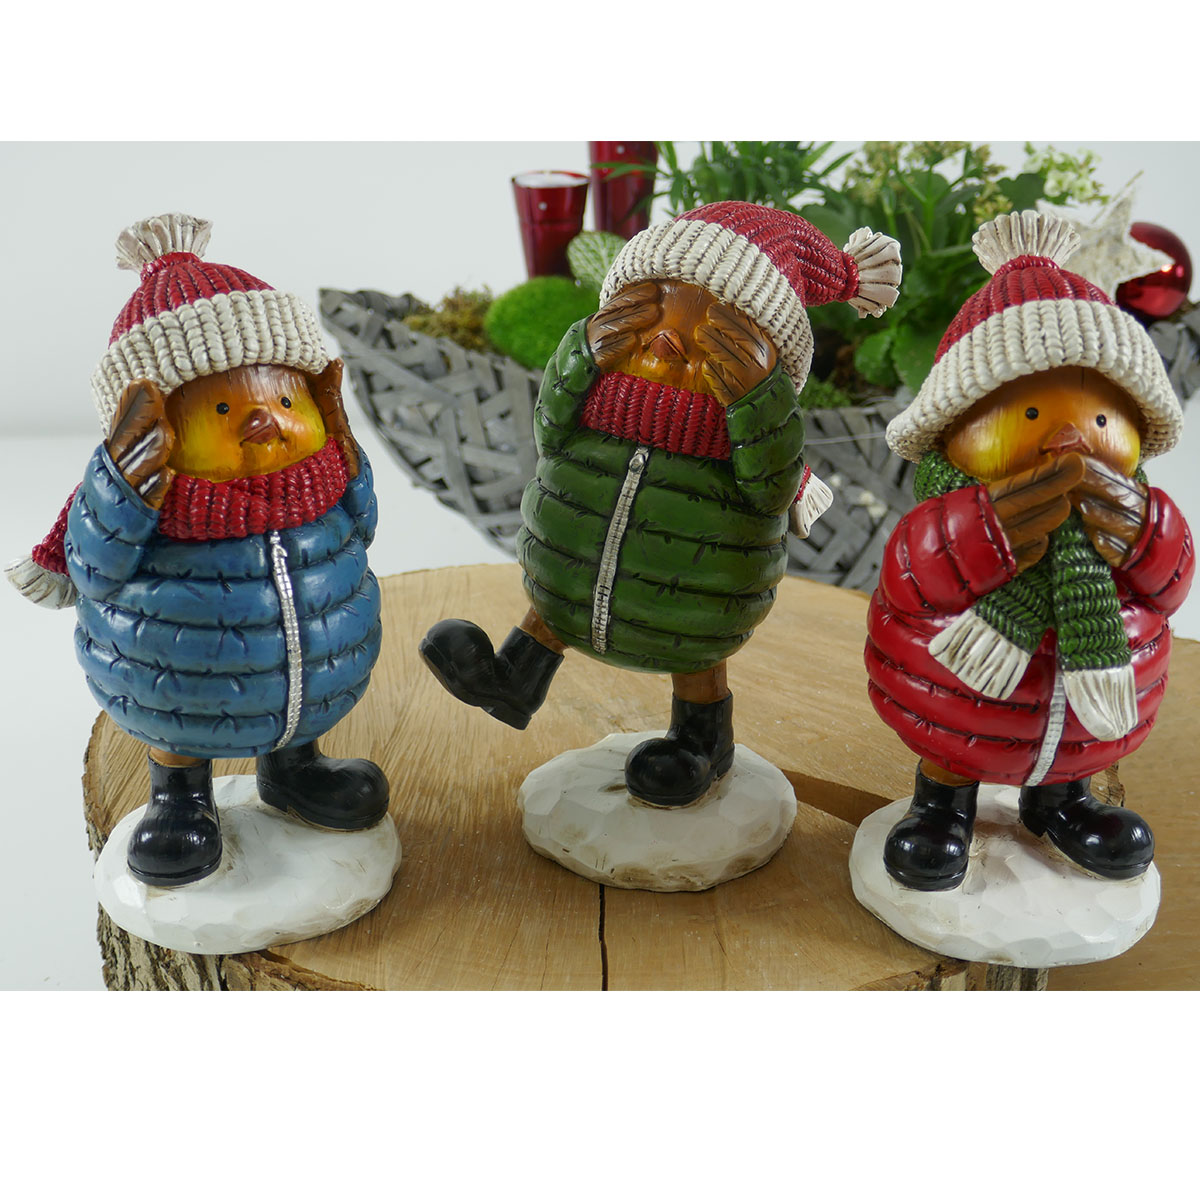 Farbenfrohe Vogel-Figuren im Winter-Outfit Image